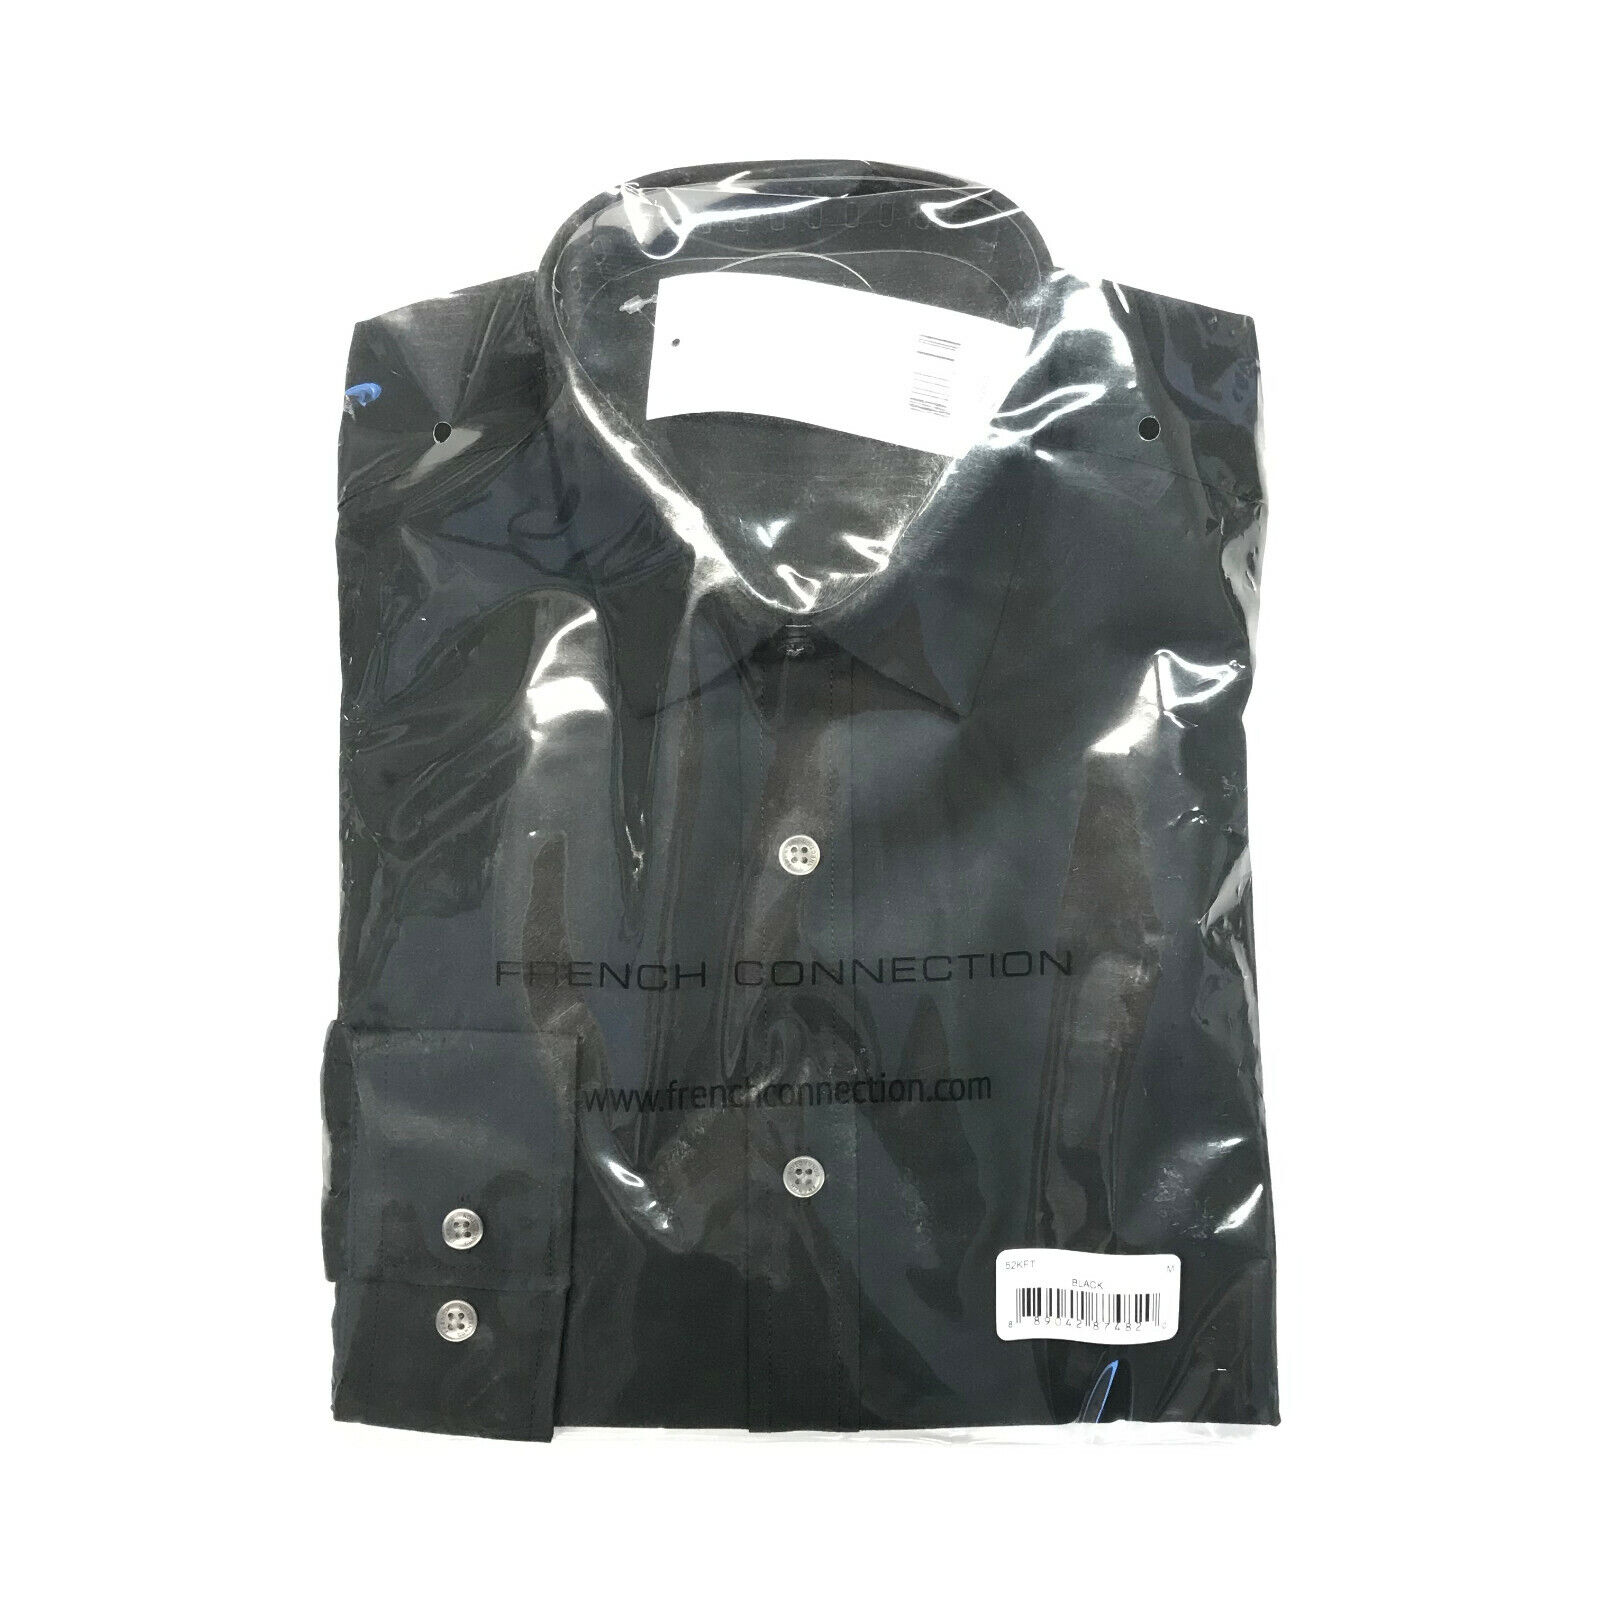 4a70187d0e1 Details about French Connection FCUK 52KFT Black Medium Long Sleeve Oxford  Shirt New In Packet